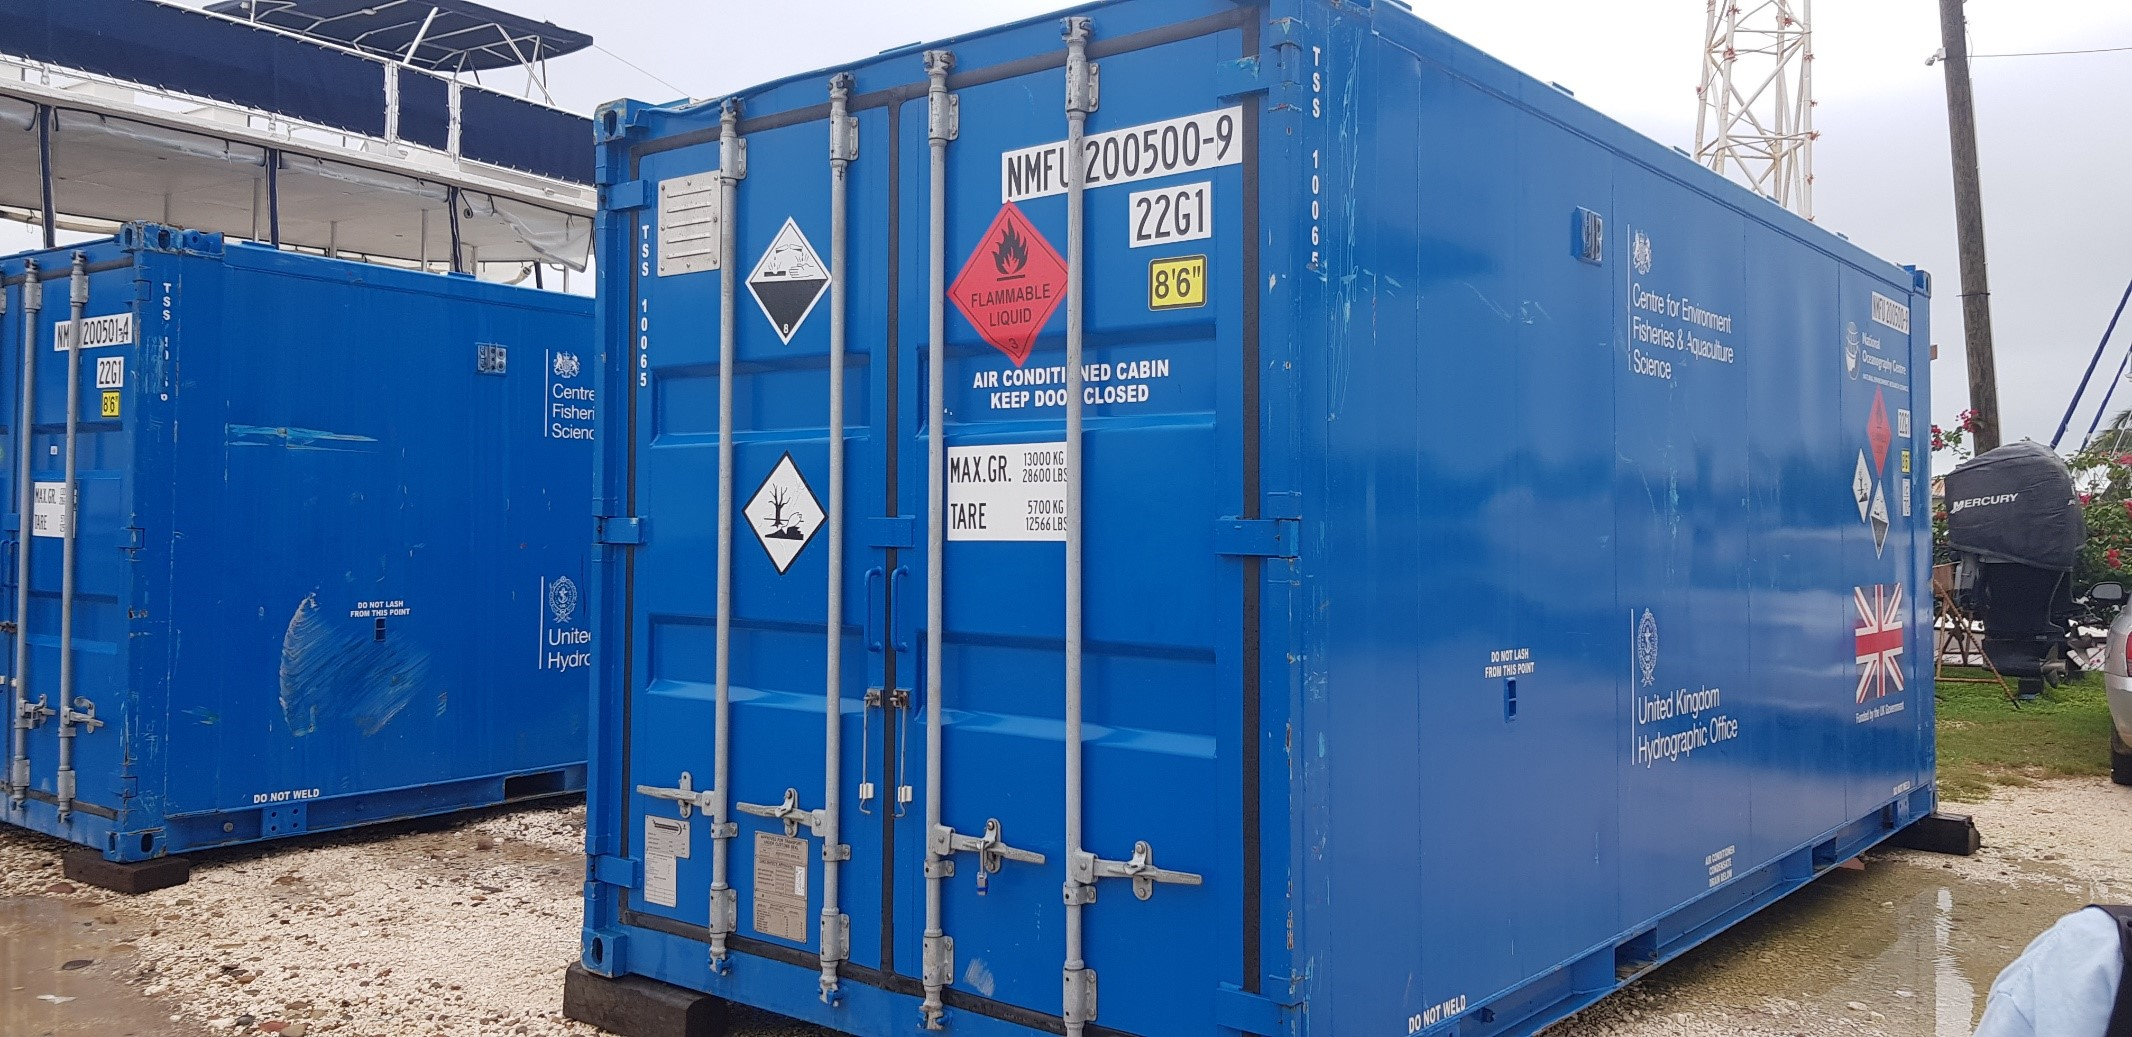 Operations and Workshop containers on site in Belize Marina 2019